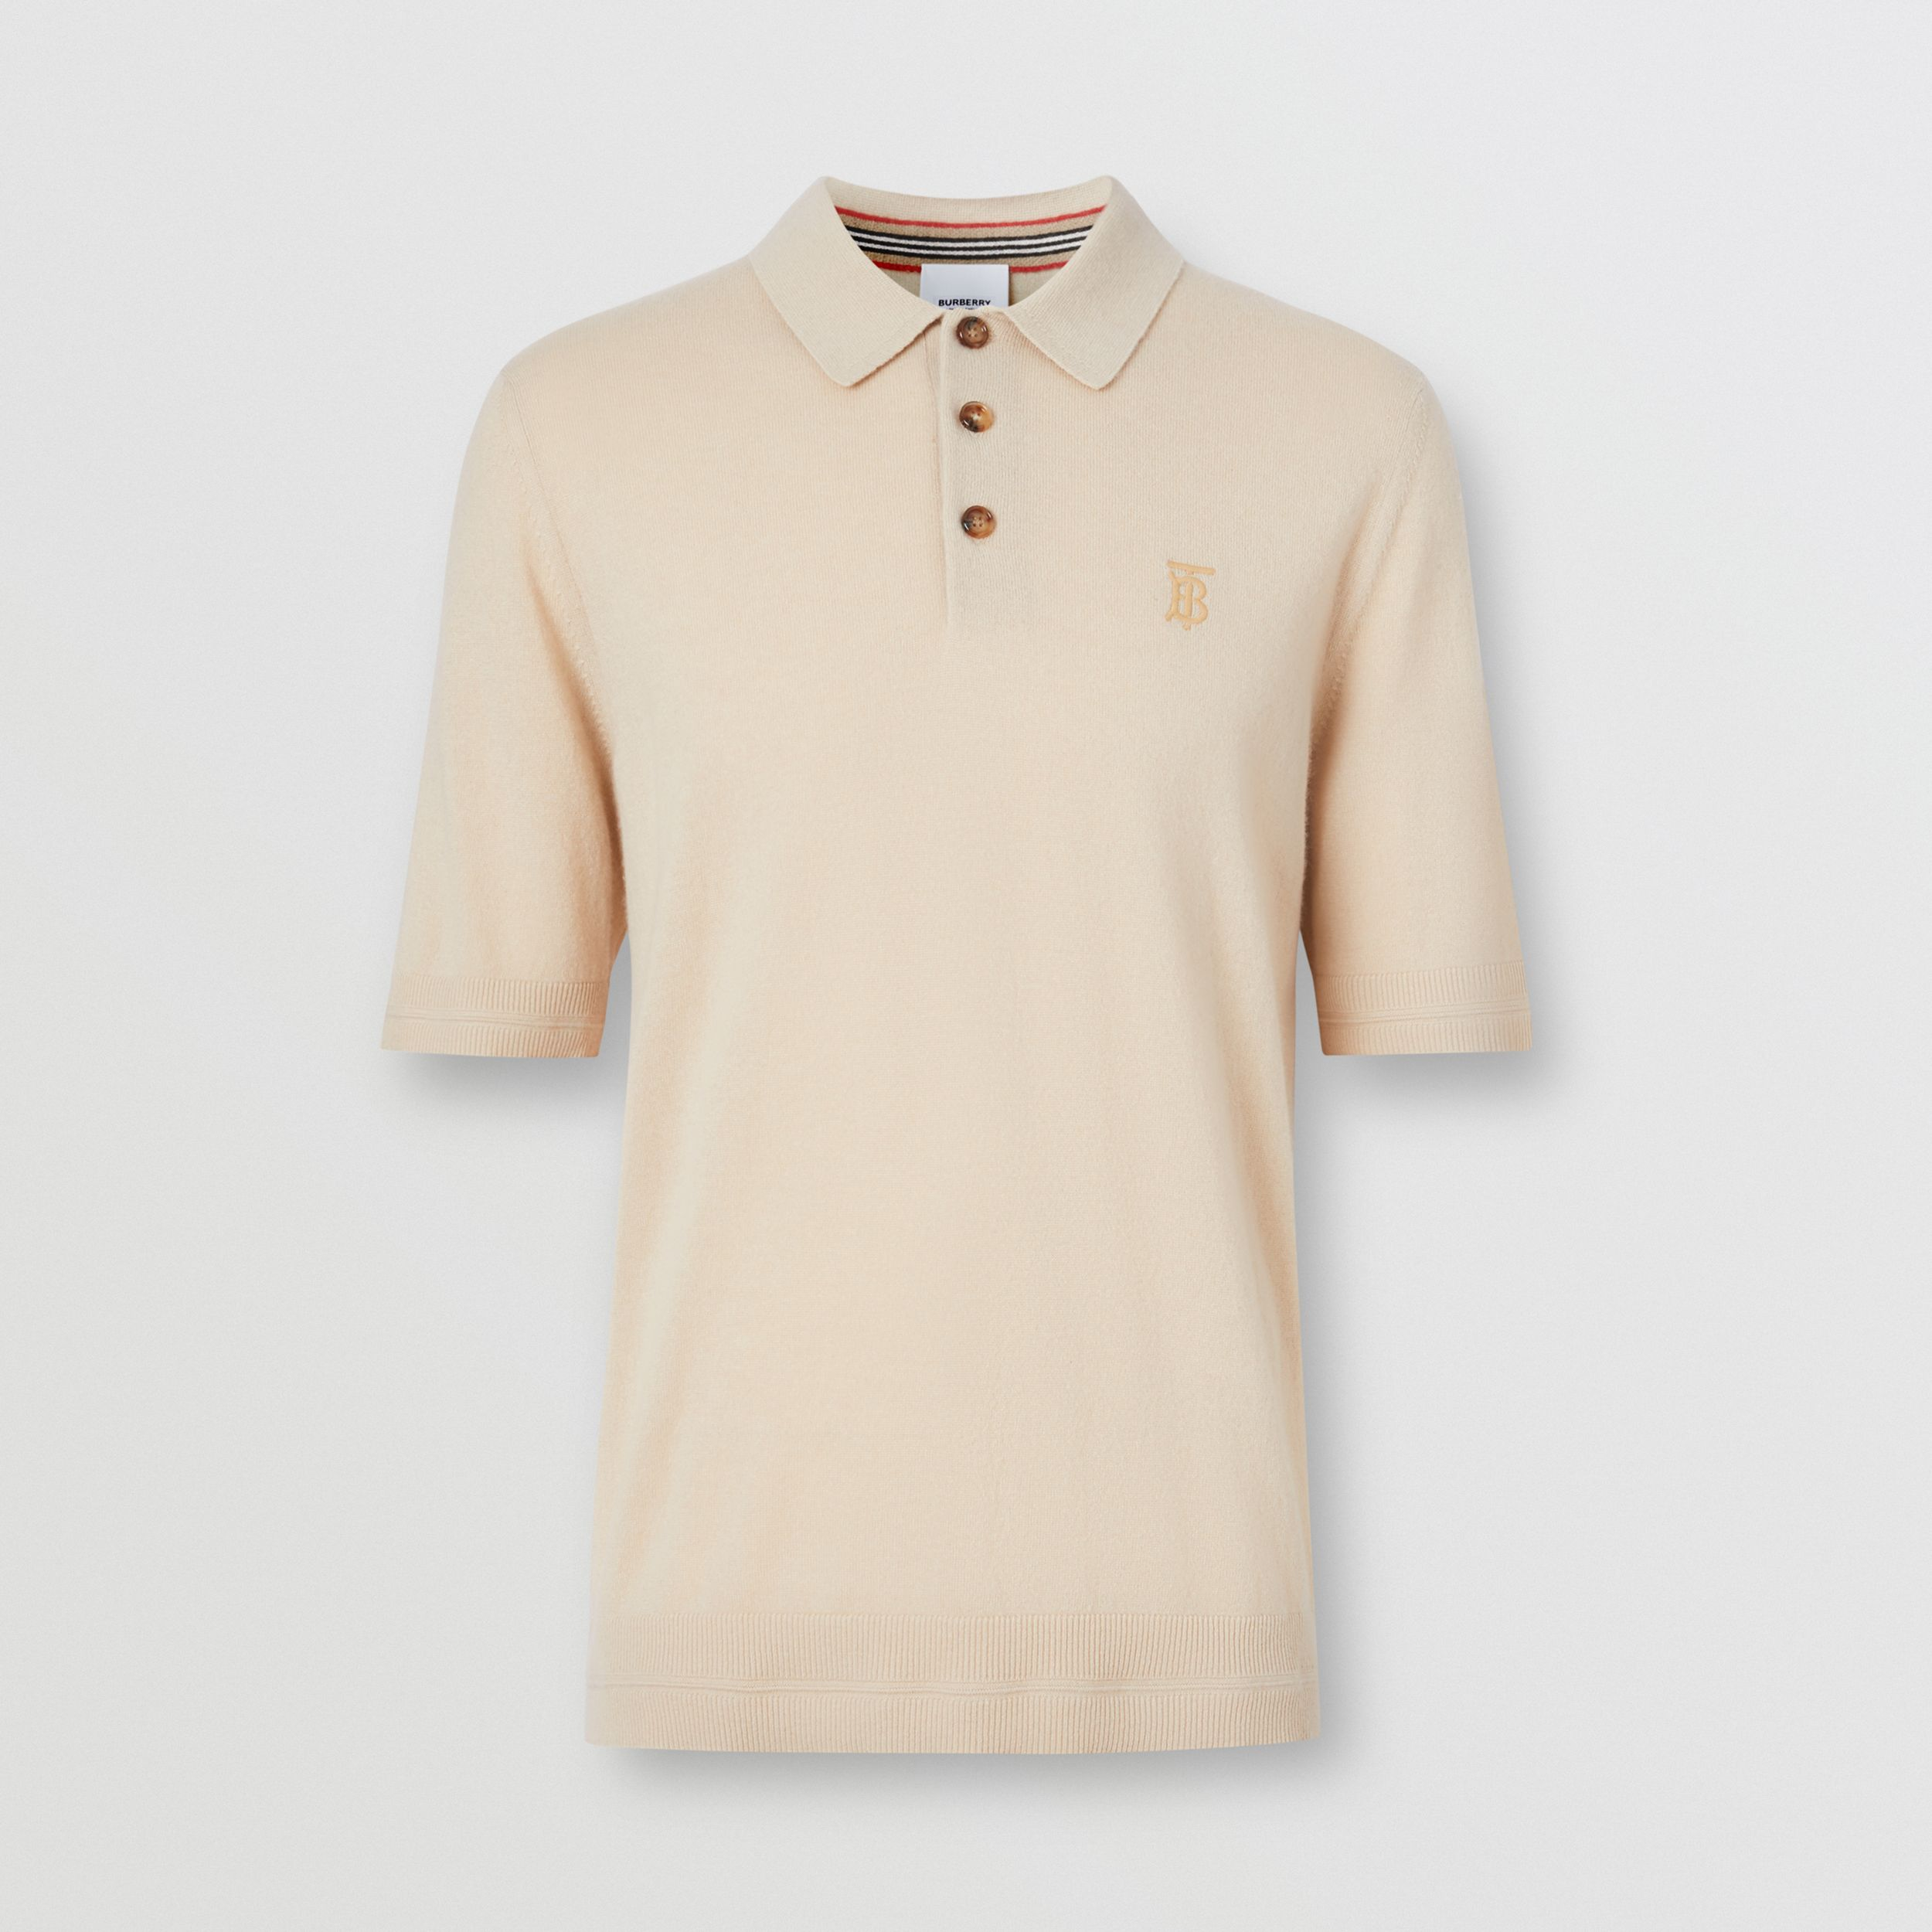 Monogram Motif Cashmere Polo Shirt in Soft Fawn - Men | Burberry - 4